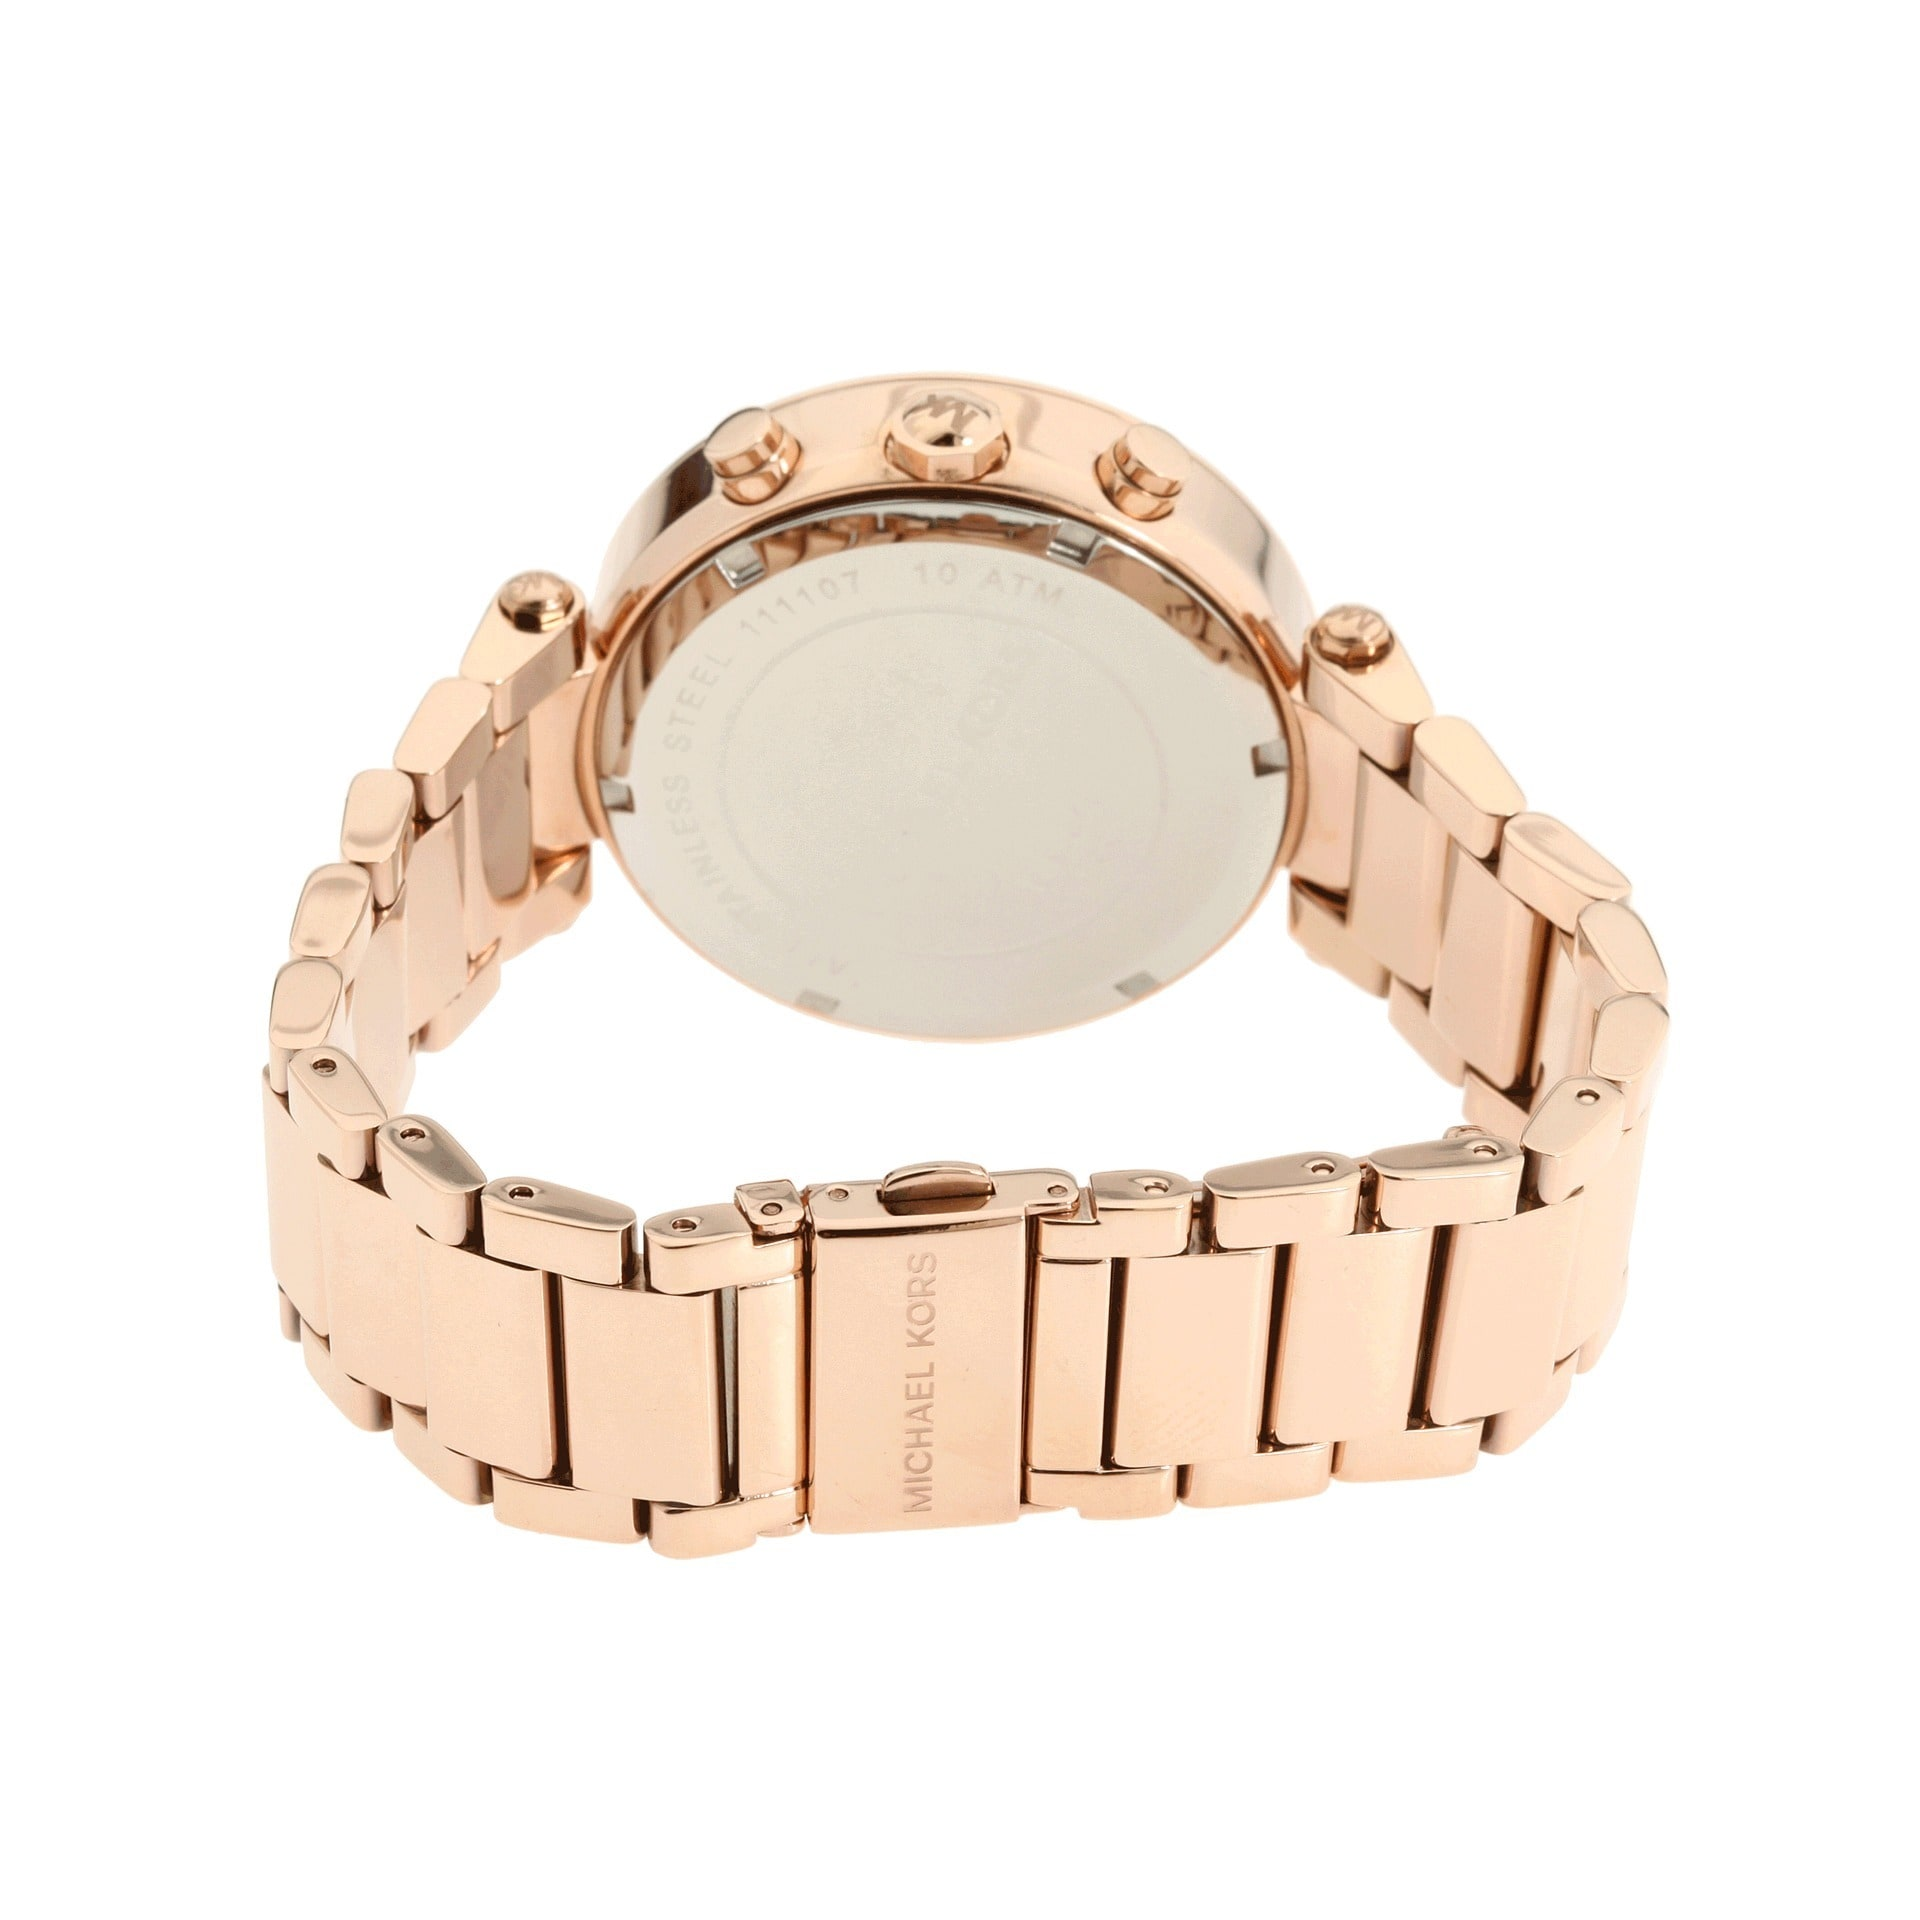 b0743a312325 Shop Michael Kors Women s MK5491 Rose Goldtone Chronograph Watch - Gold -  Free Shipping Today - Overstock - 6233476